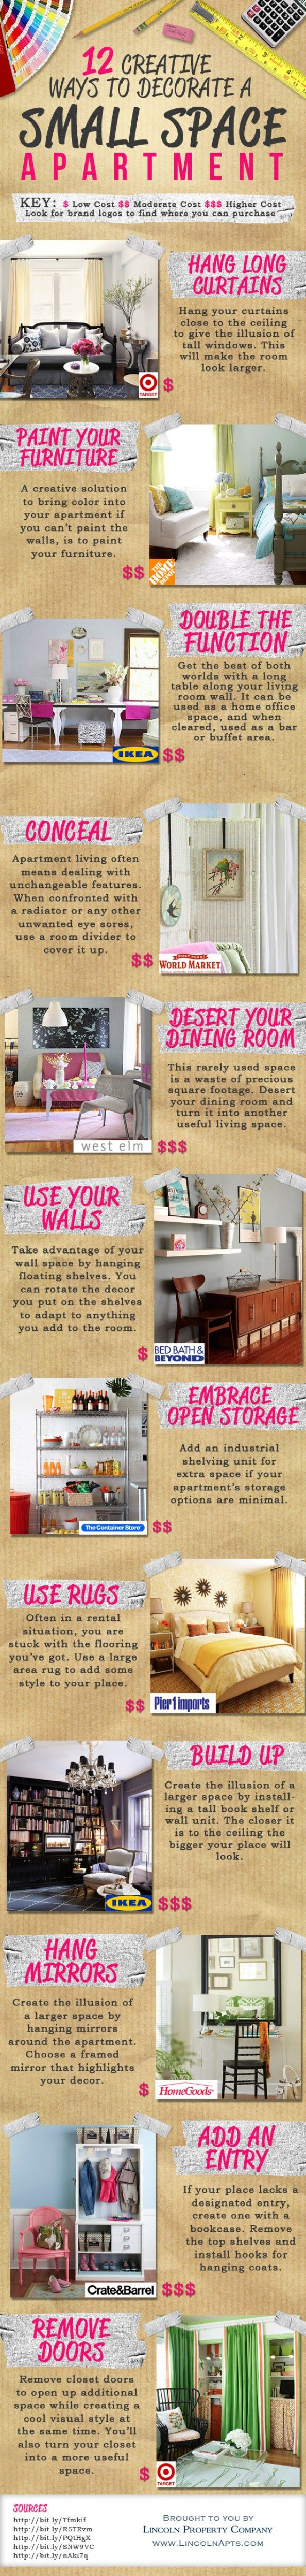 12 Creative Ways to Decorate a Small Space! Just more ideas and inspiration to make the most of our space!